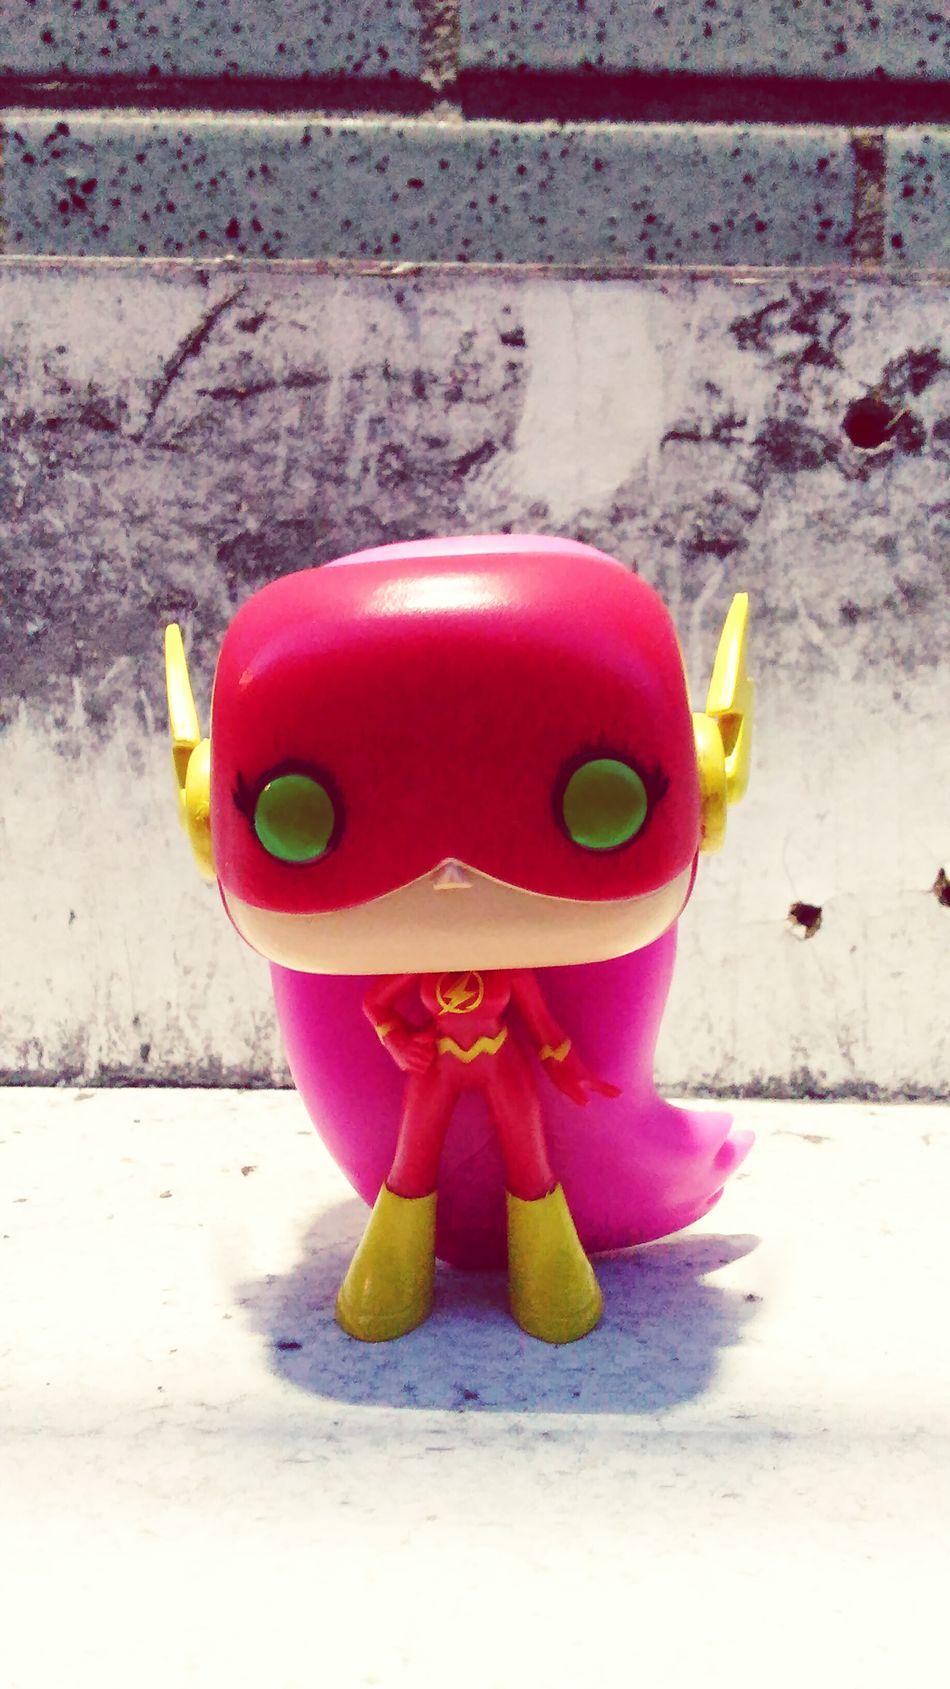 Vibrant Color Starfire Theflash Teentitans Multi Colored Funkopopvinyl Concrete Concrete Jungle Concrete Wall Front View Imagination Colorful Fun Bestever In Front Of Eyem Best Shots Upclose  Smiley Face Amazing Creativity Outdoors Lettherebelight Flash Close-up Still Life